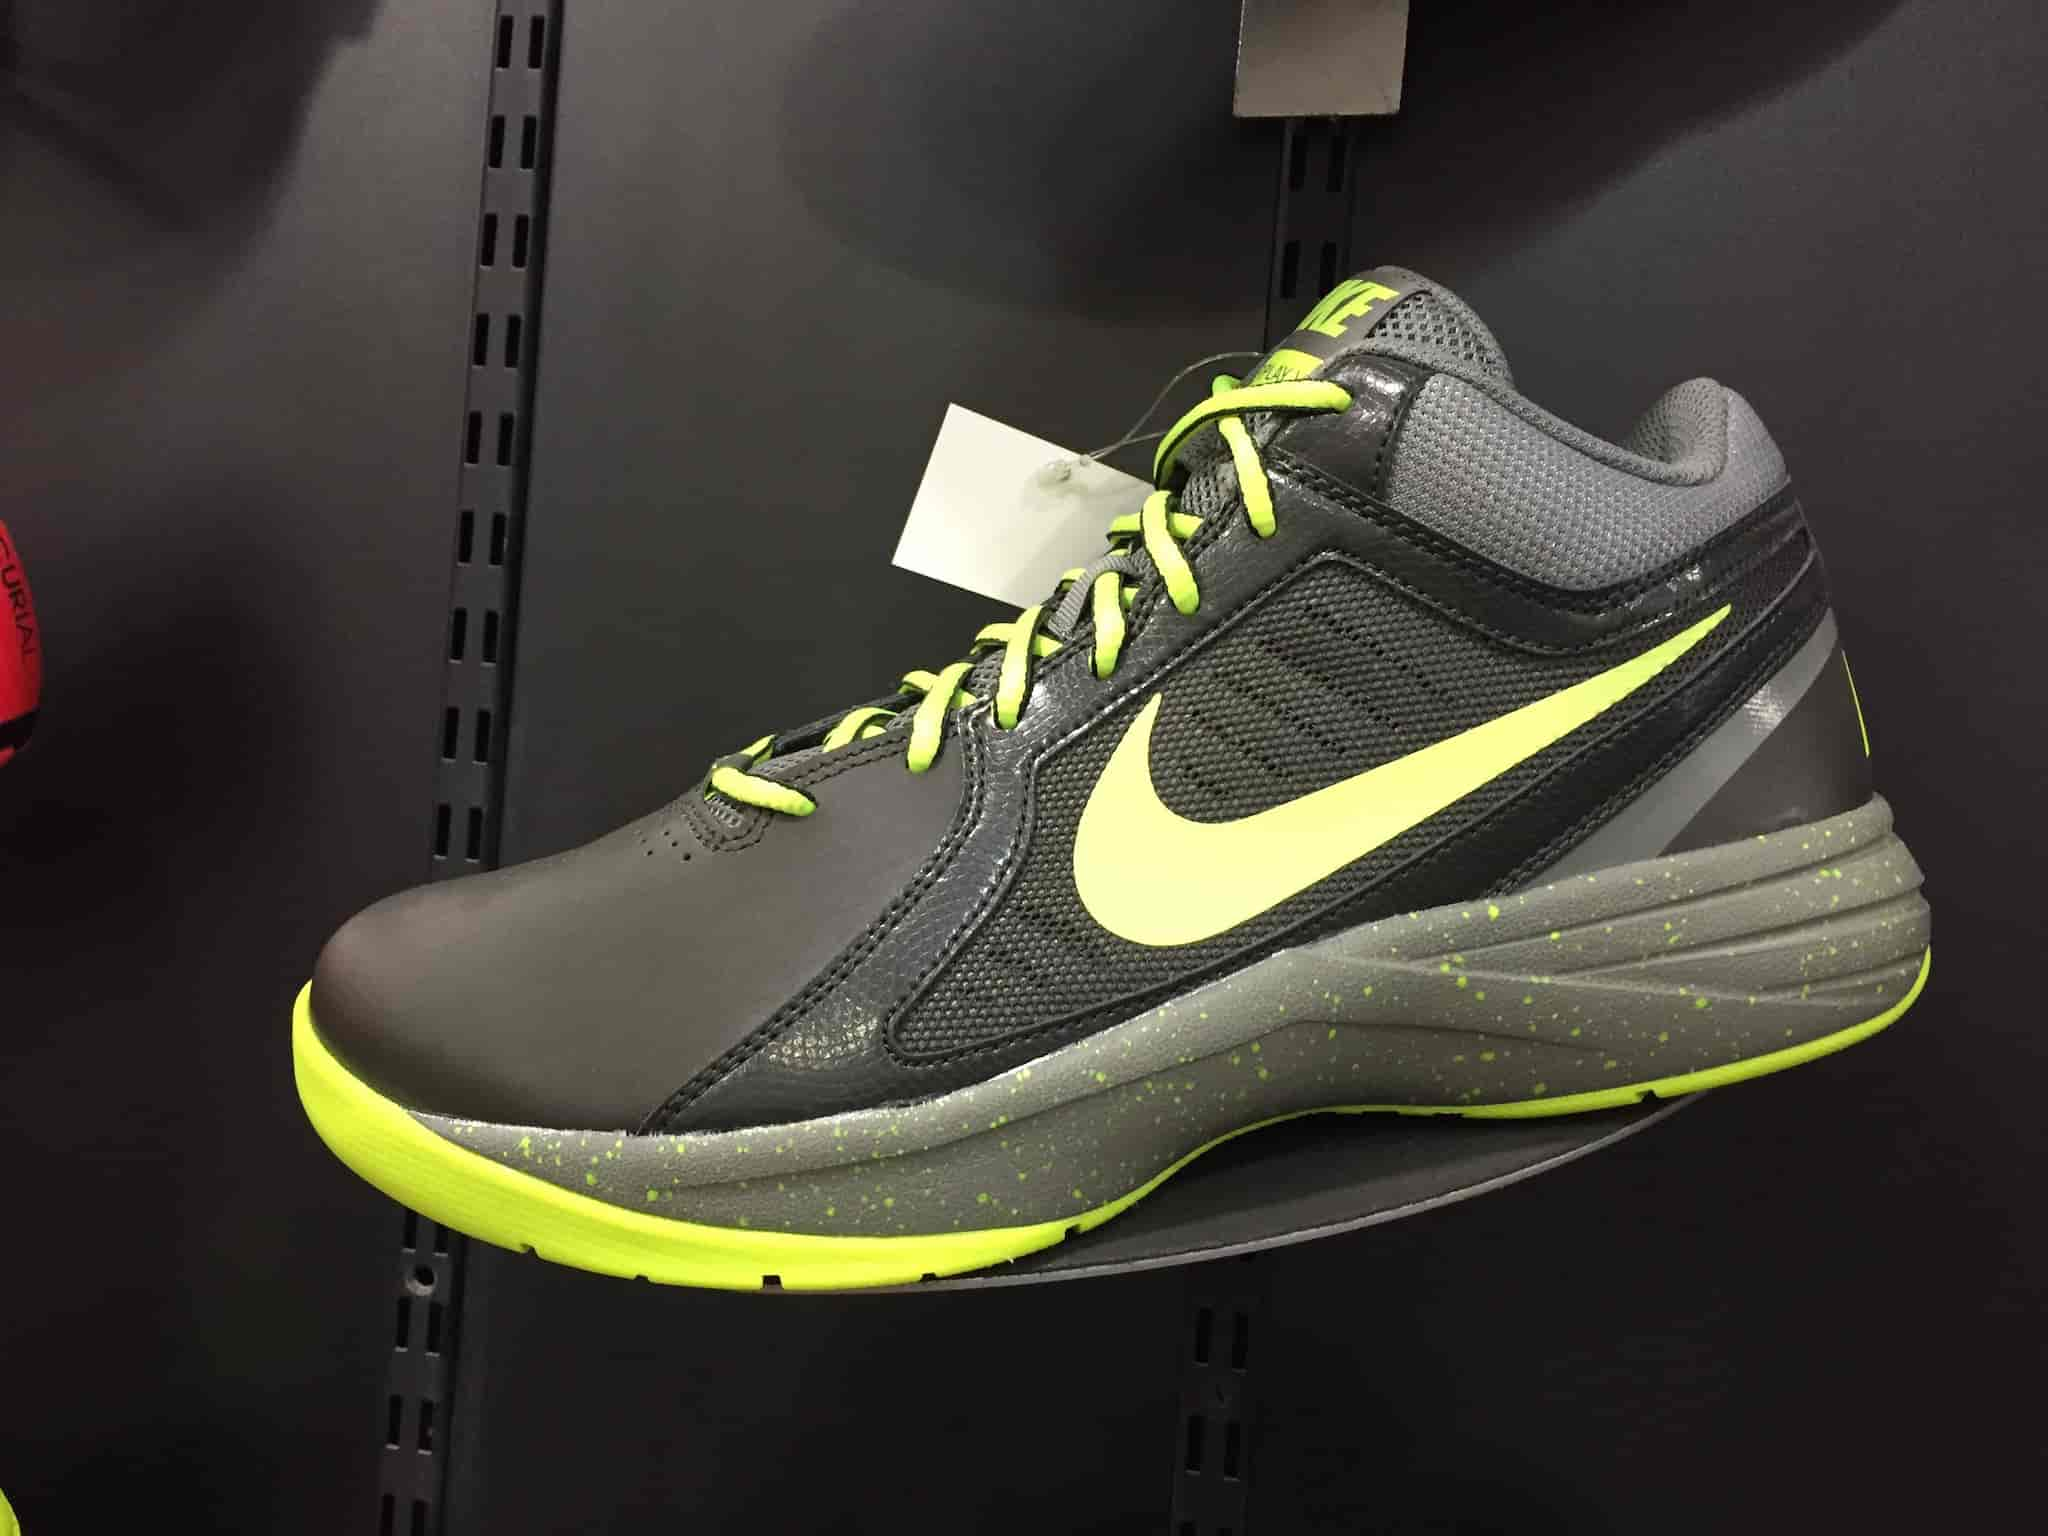 Nike Store Photos, East Patel Nagar, Delhi-NCR- Pictures & Images Gallery -  Justdial